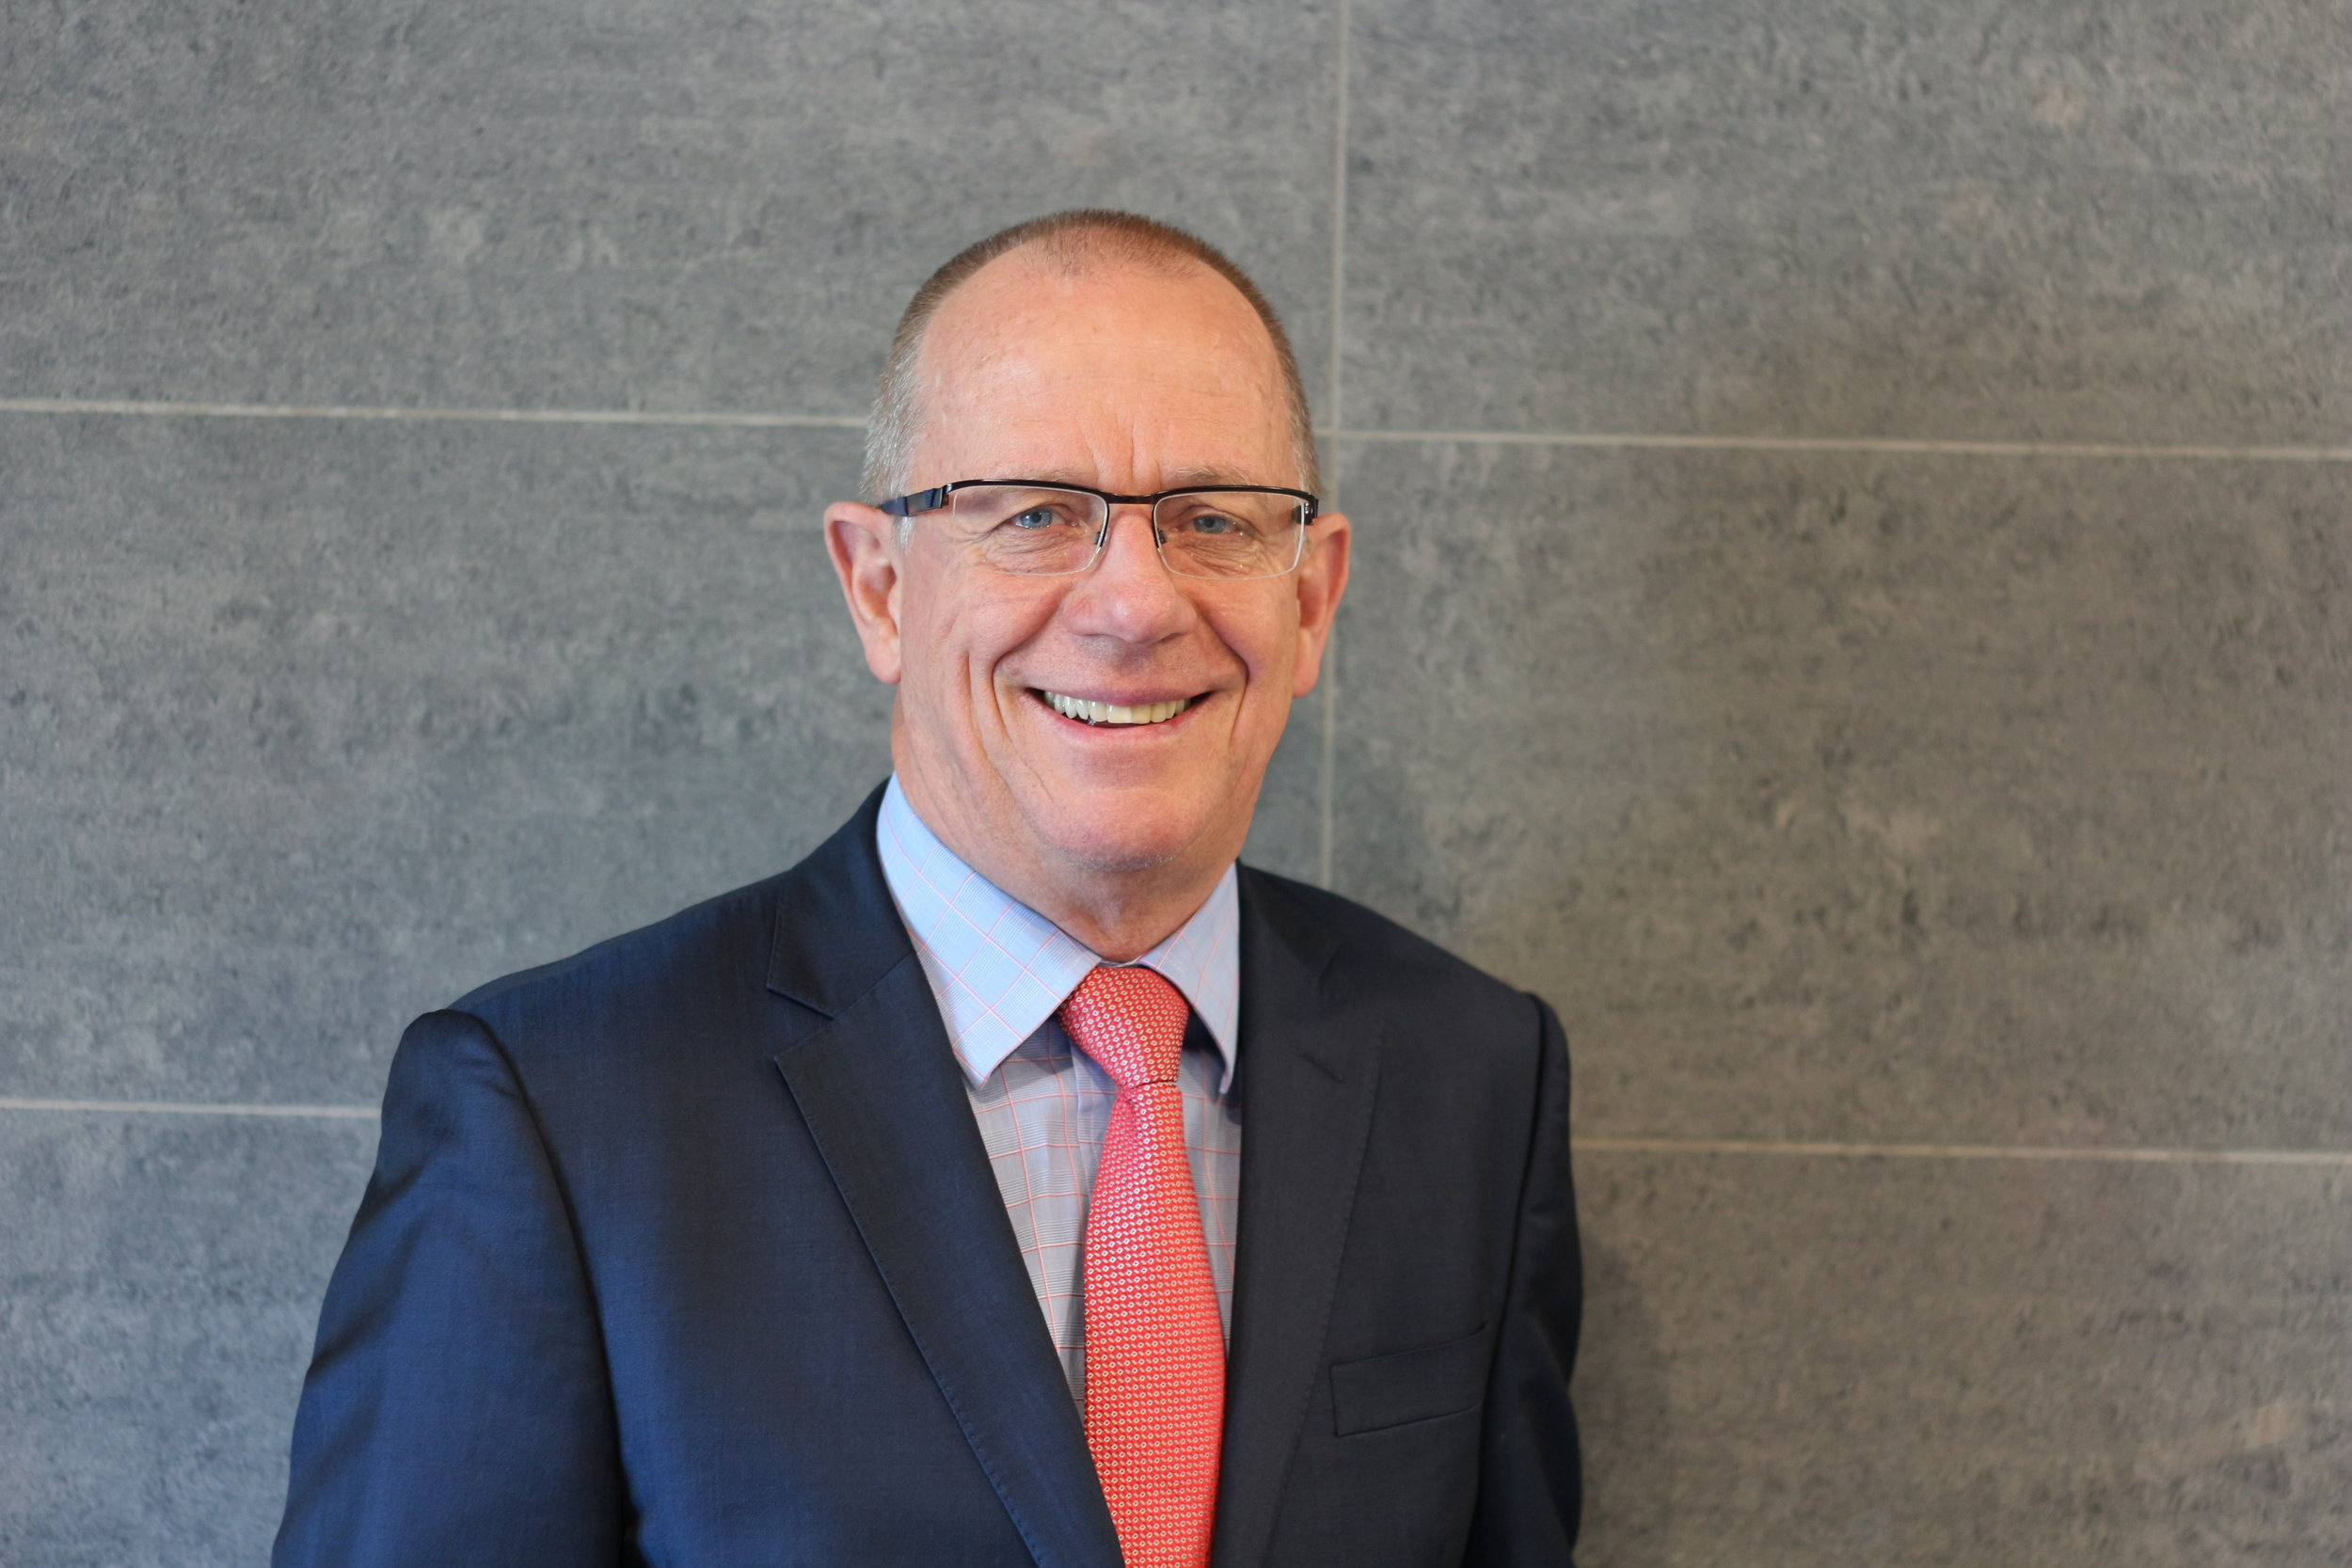 Peter Mancell about Financial Service Legislation Amendment Bill in New Zealand - Published in Investment News New Zealand.